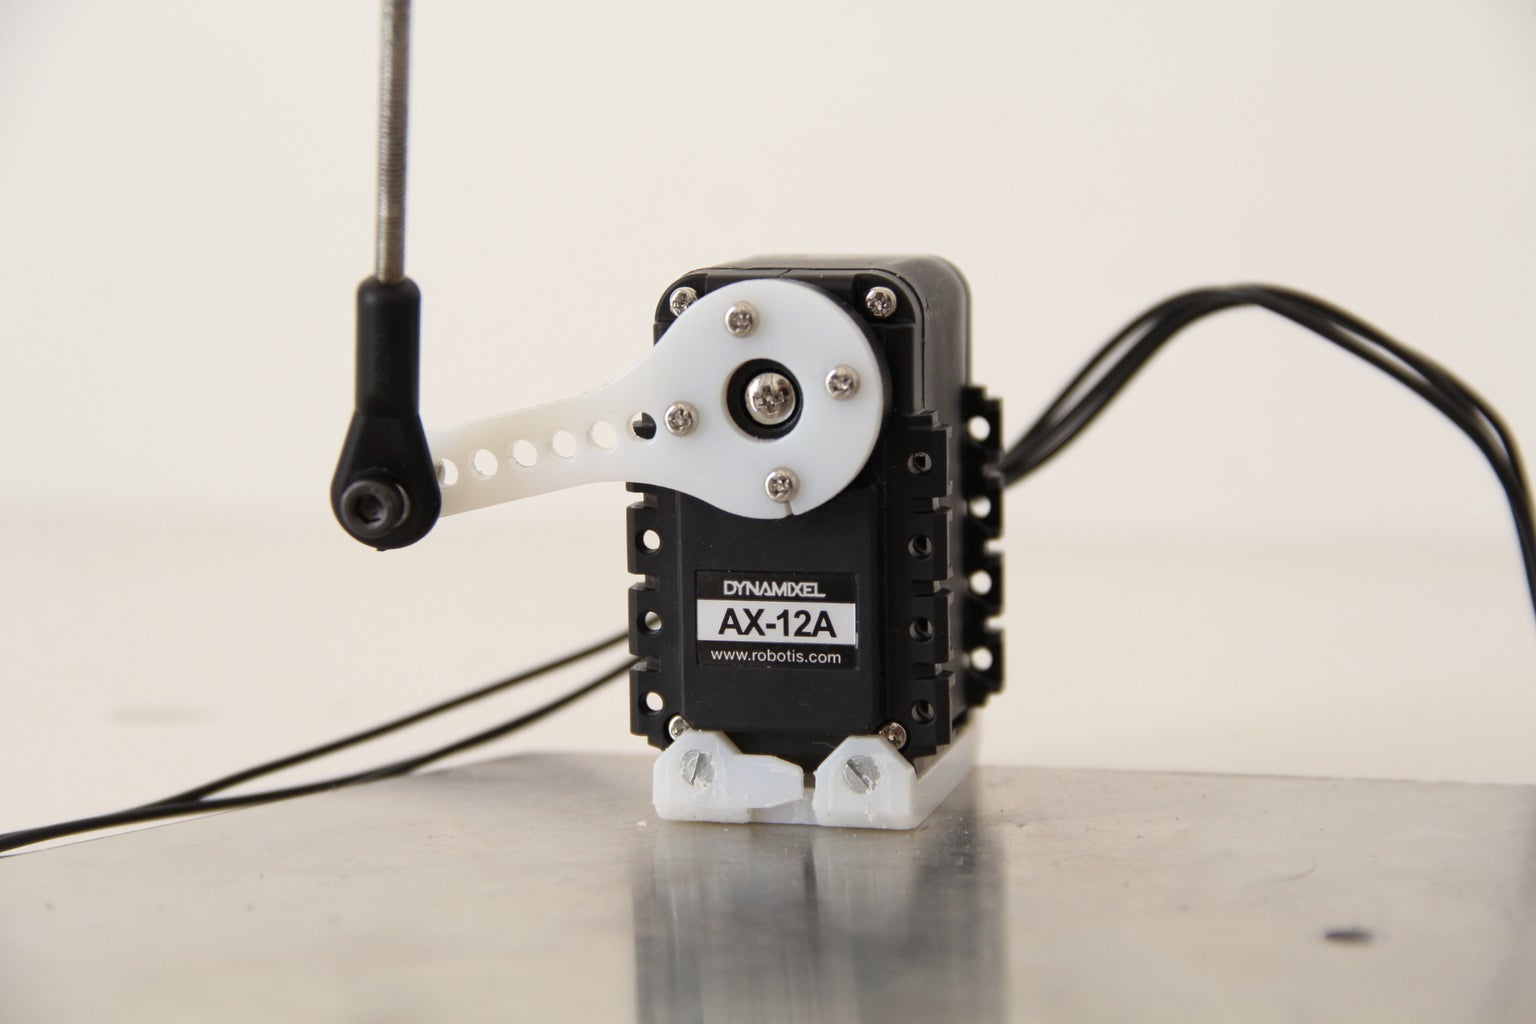 How to Drive Dynamixel AX-12A Servos (with a RaspberryPi)